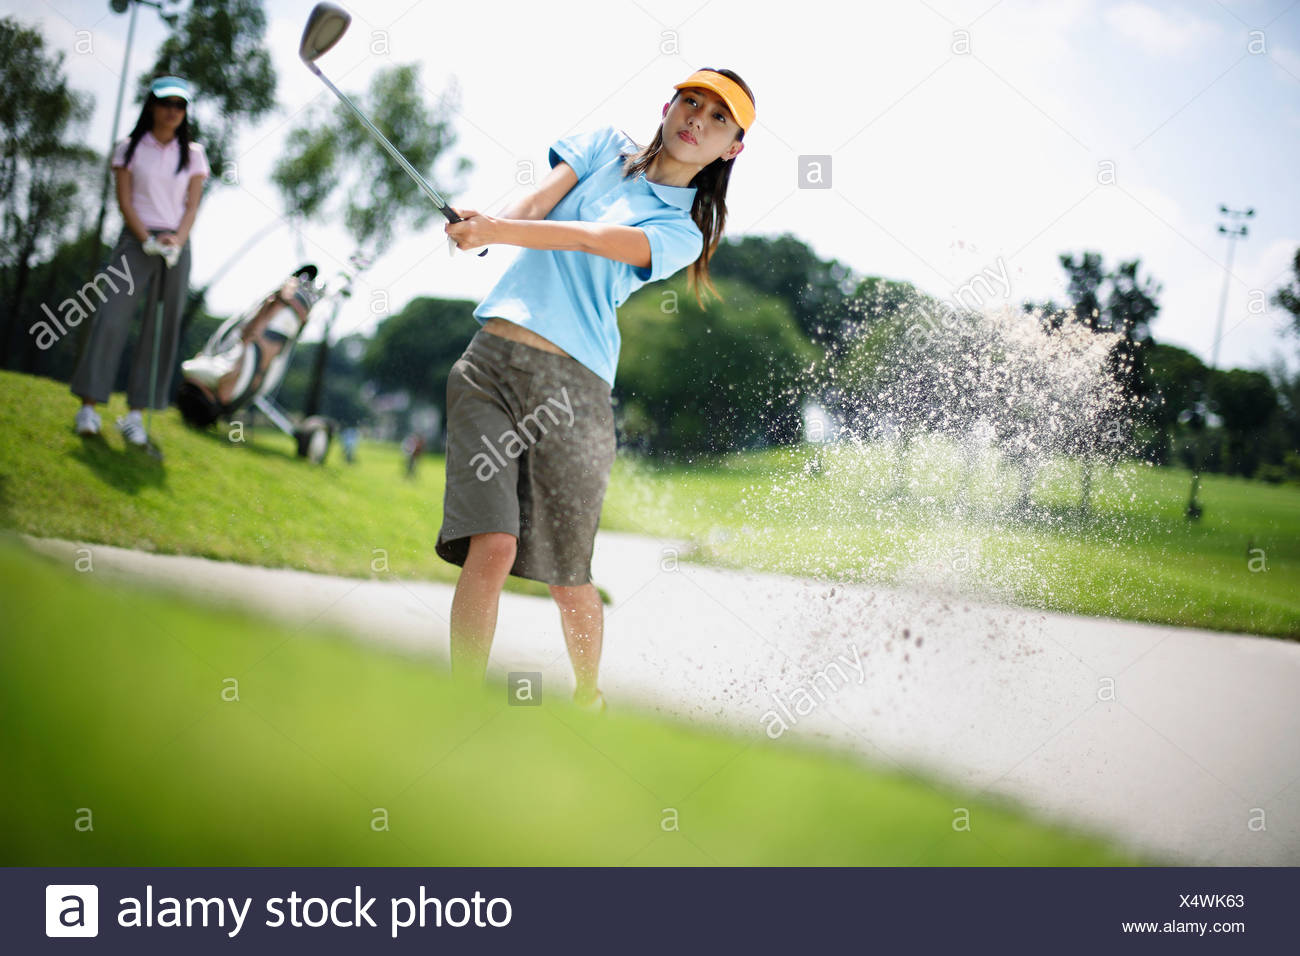 Woman playing golf with woman in background - Stock Image